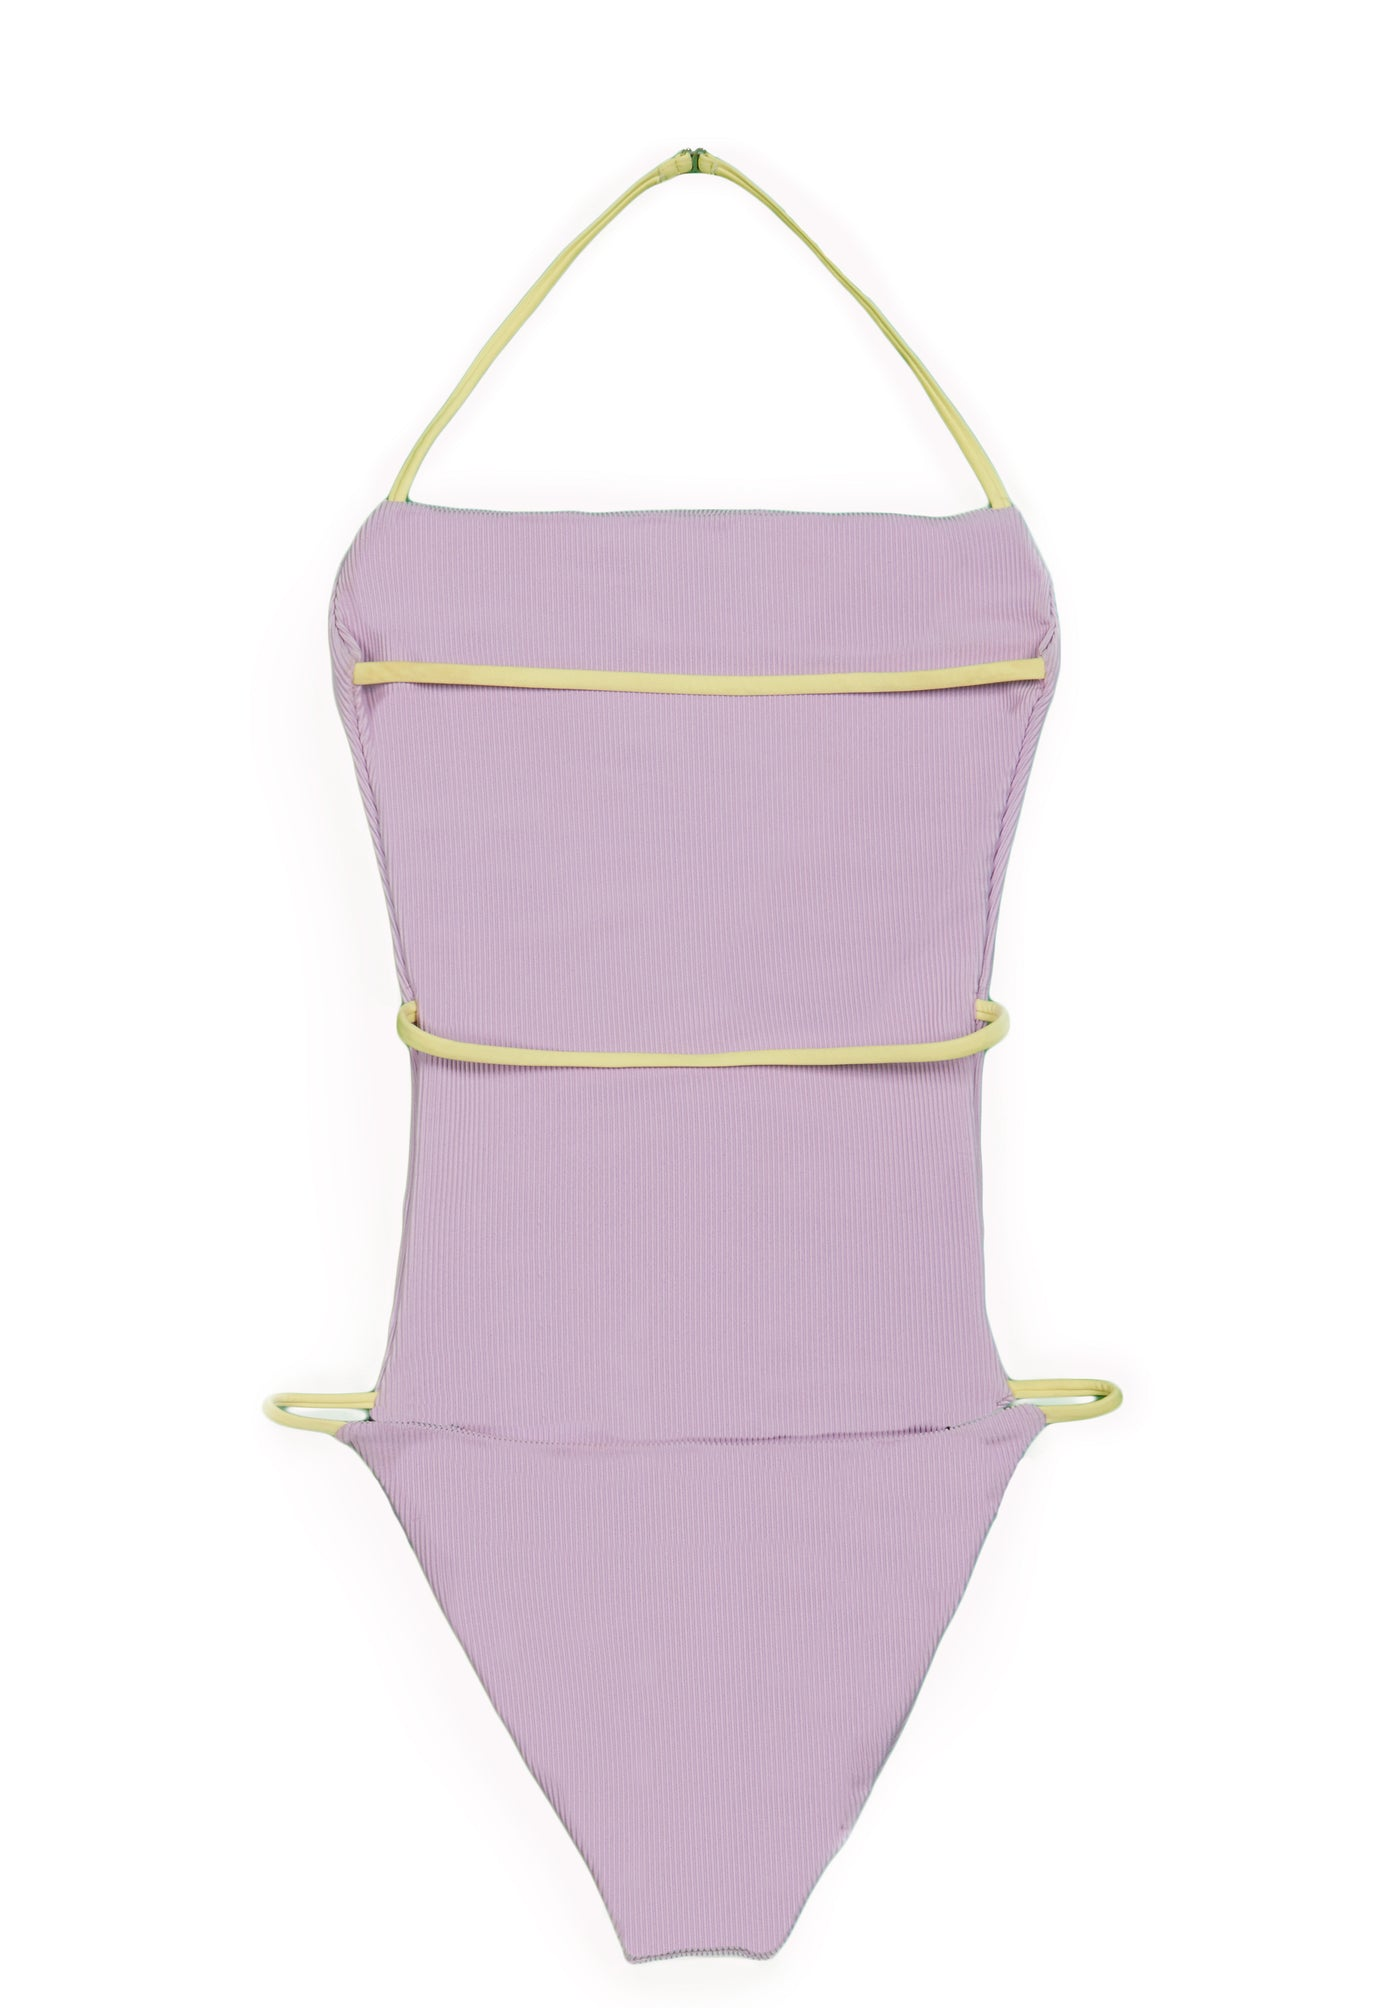 The Nina One Piece (Ribbed Lavender / Light Yellow Strap)